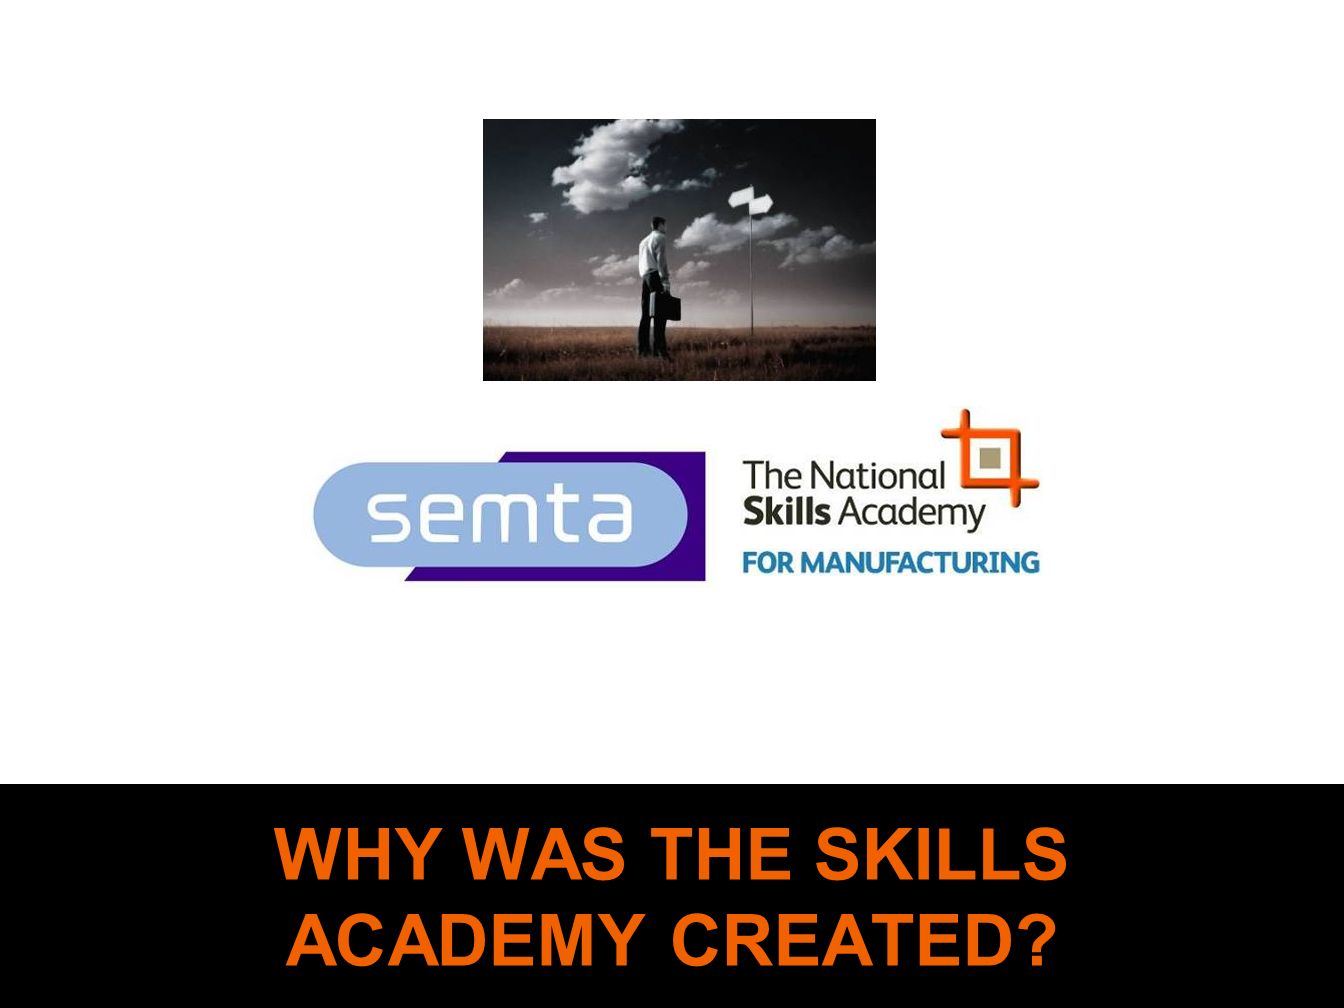 WHY WAS THE SKILLS ACADEMY CREATED